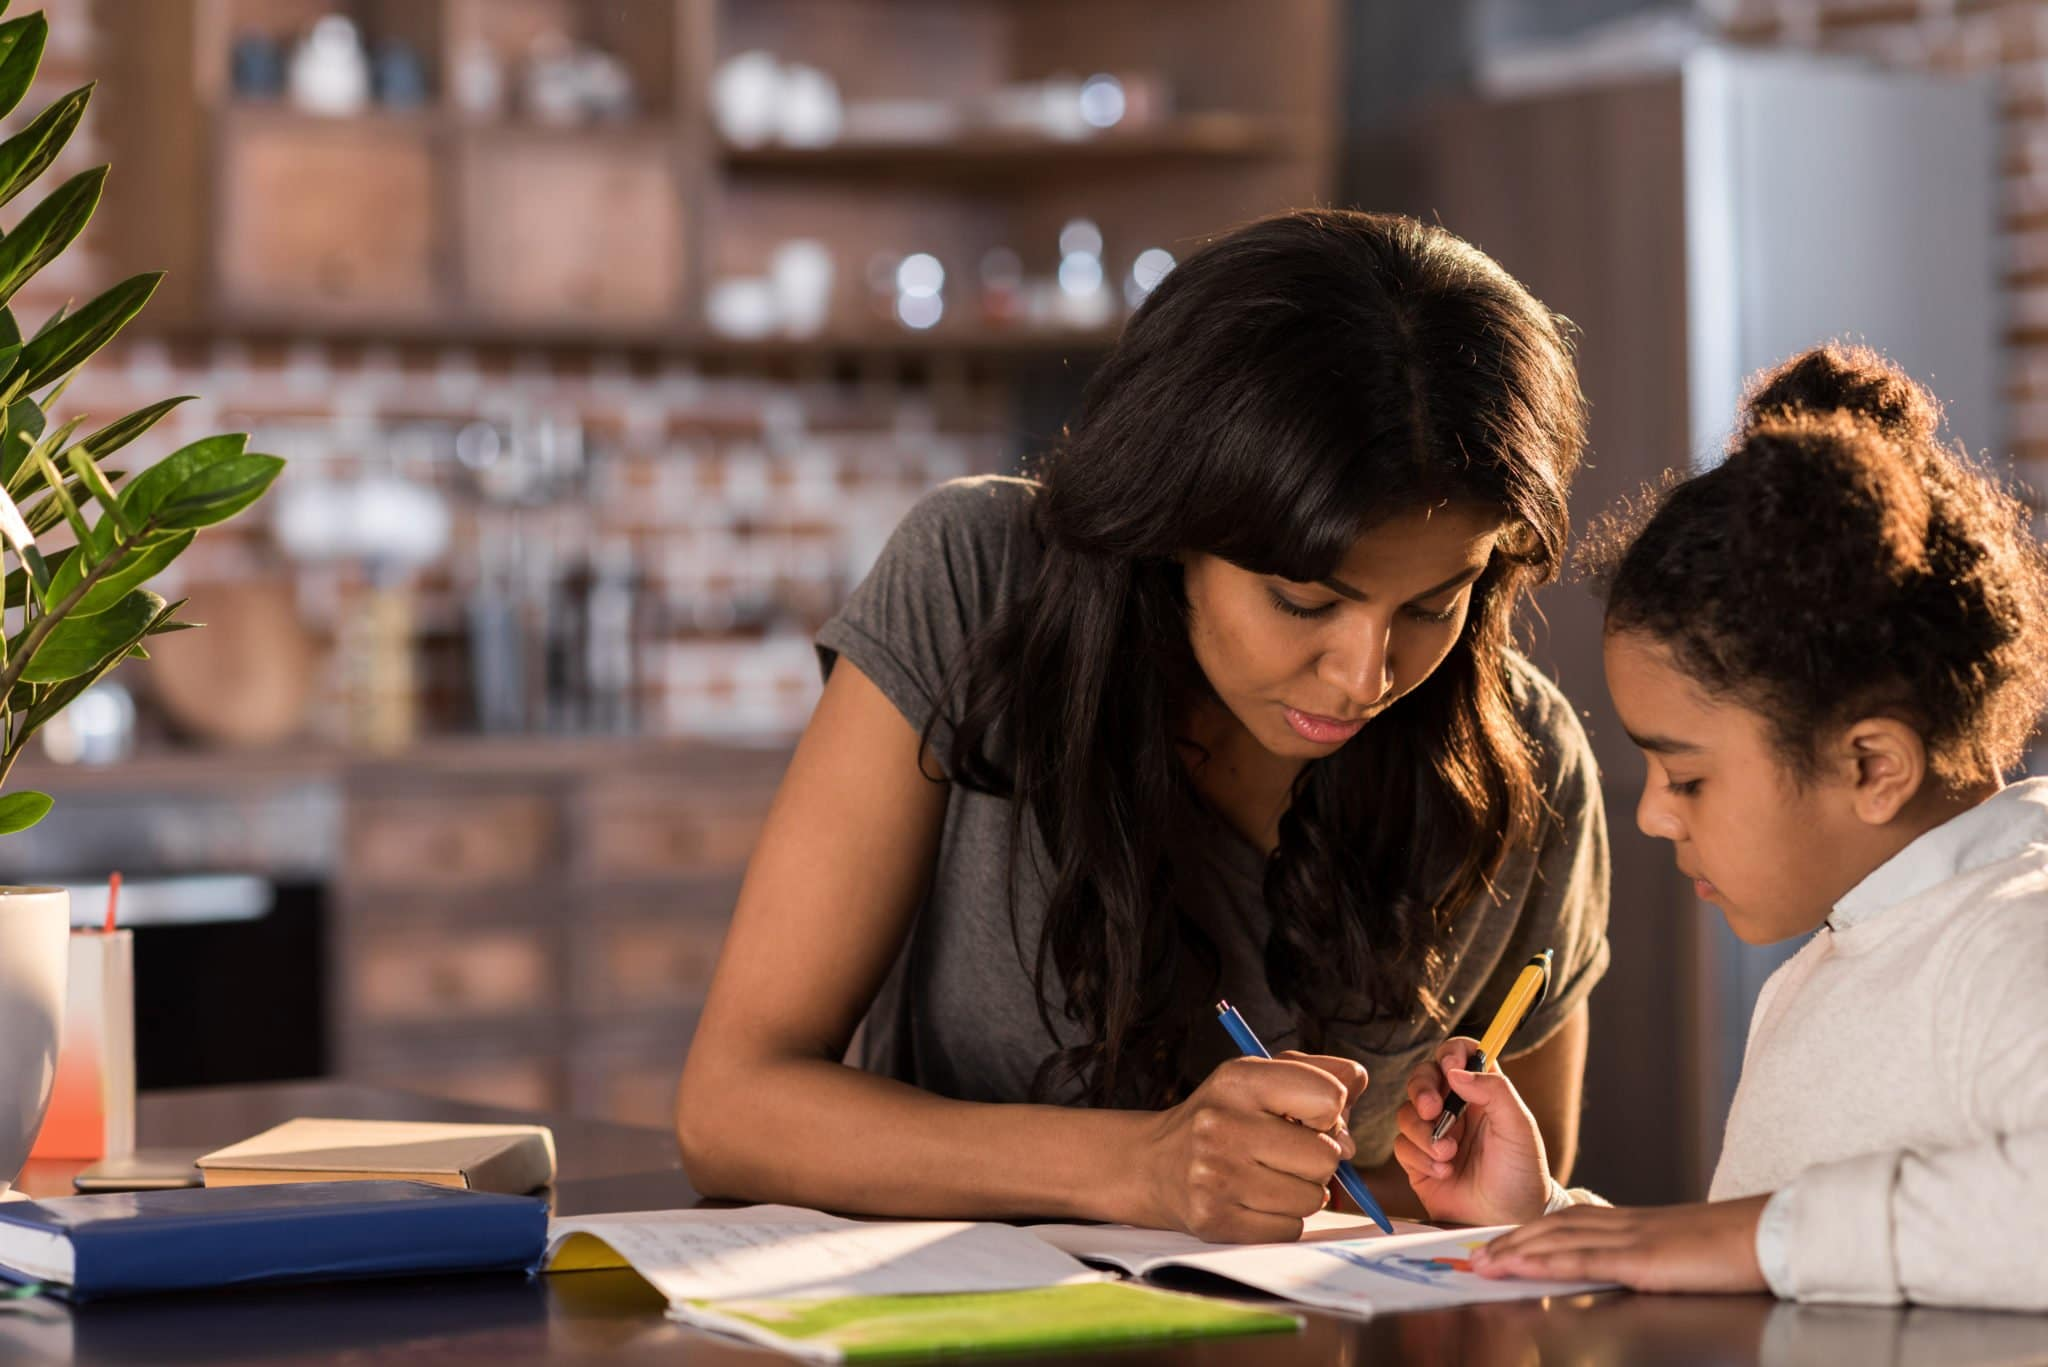 Here are 3 things every mom should do to help improve your child's academics. What every mom needs to know is around you everyday.